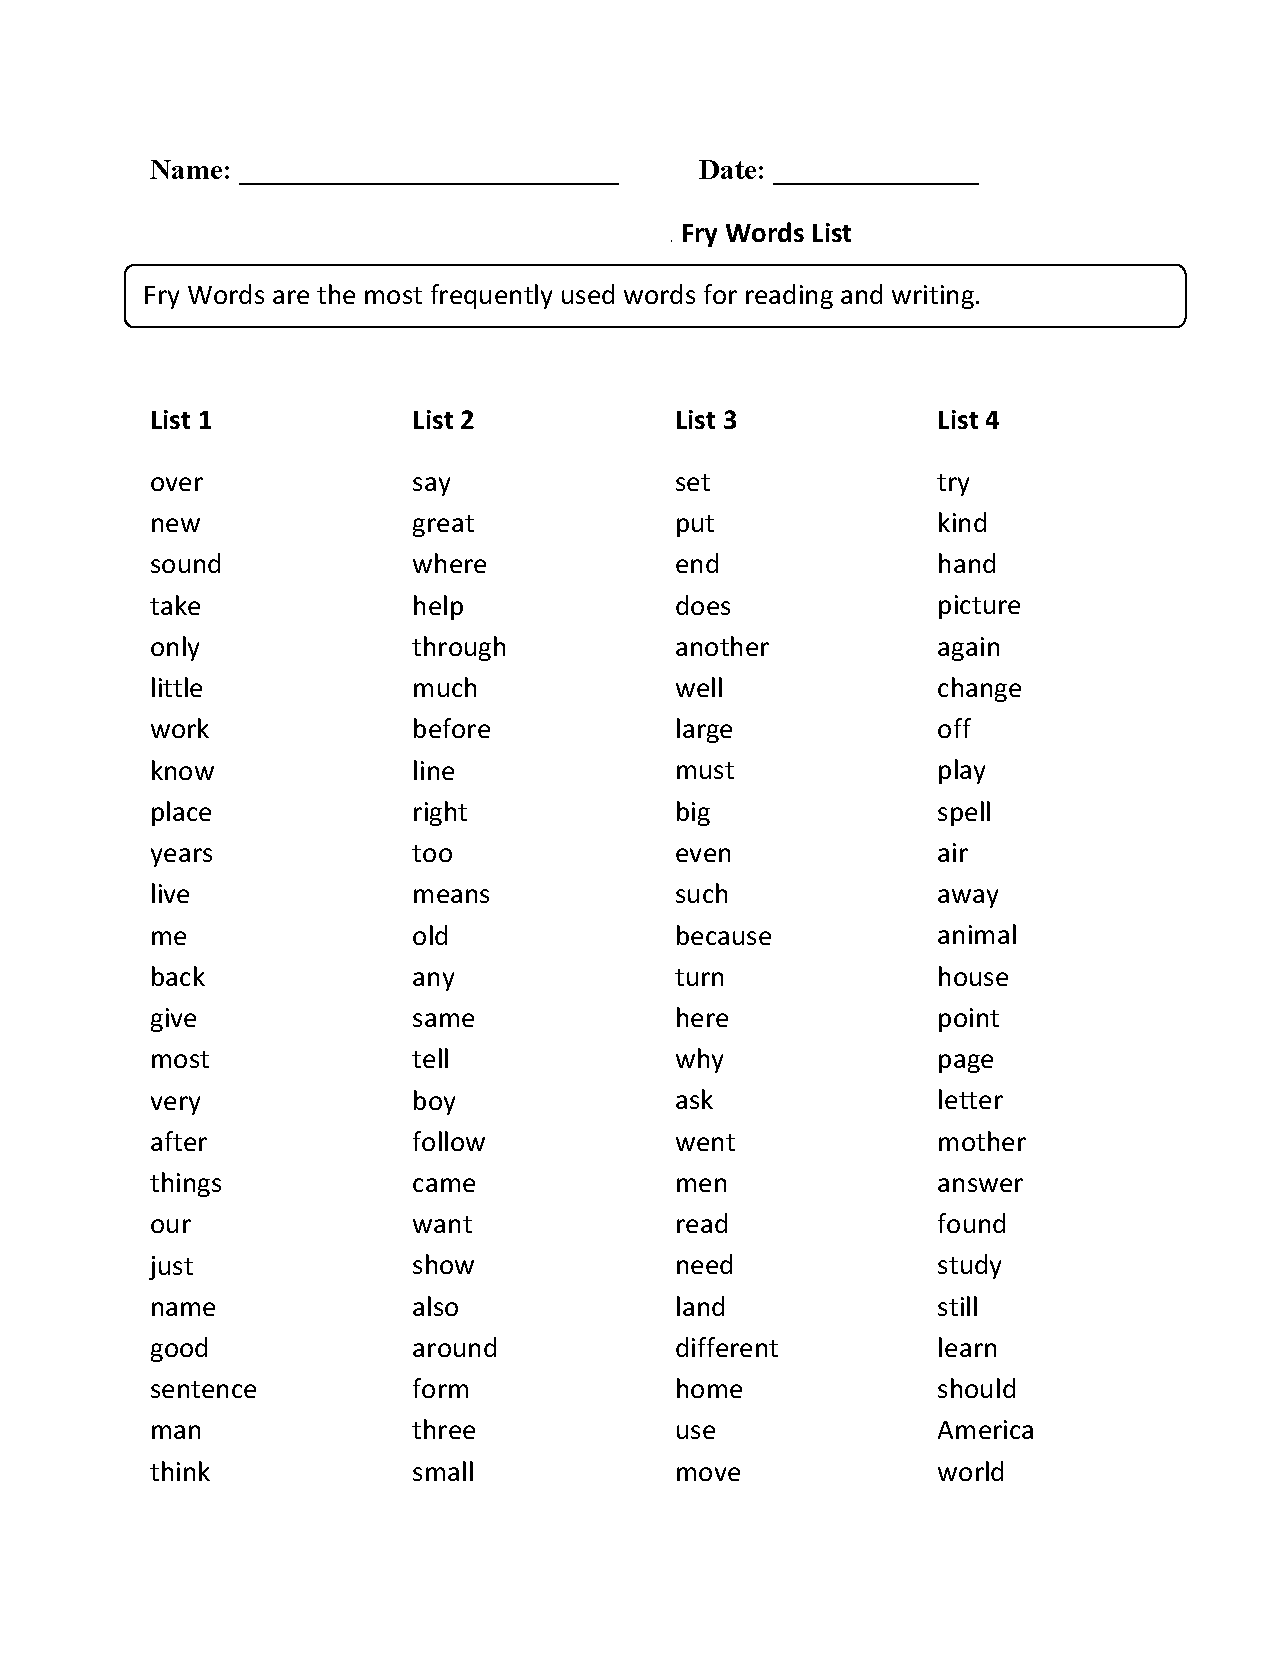 It's just a photo of Gorgeous Fry Phrases Printable